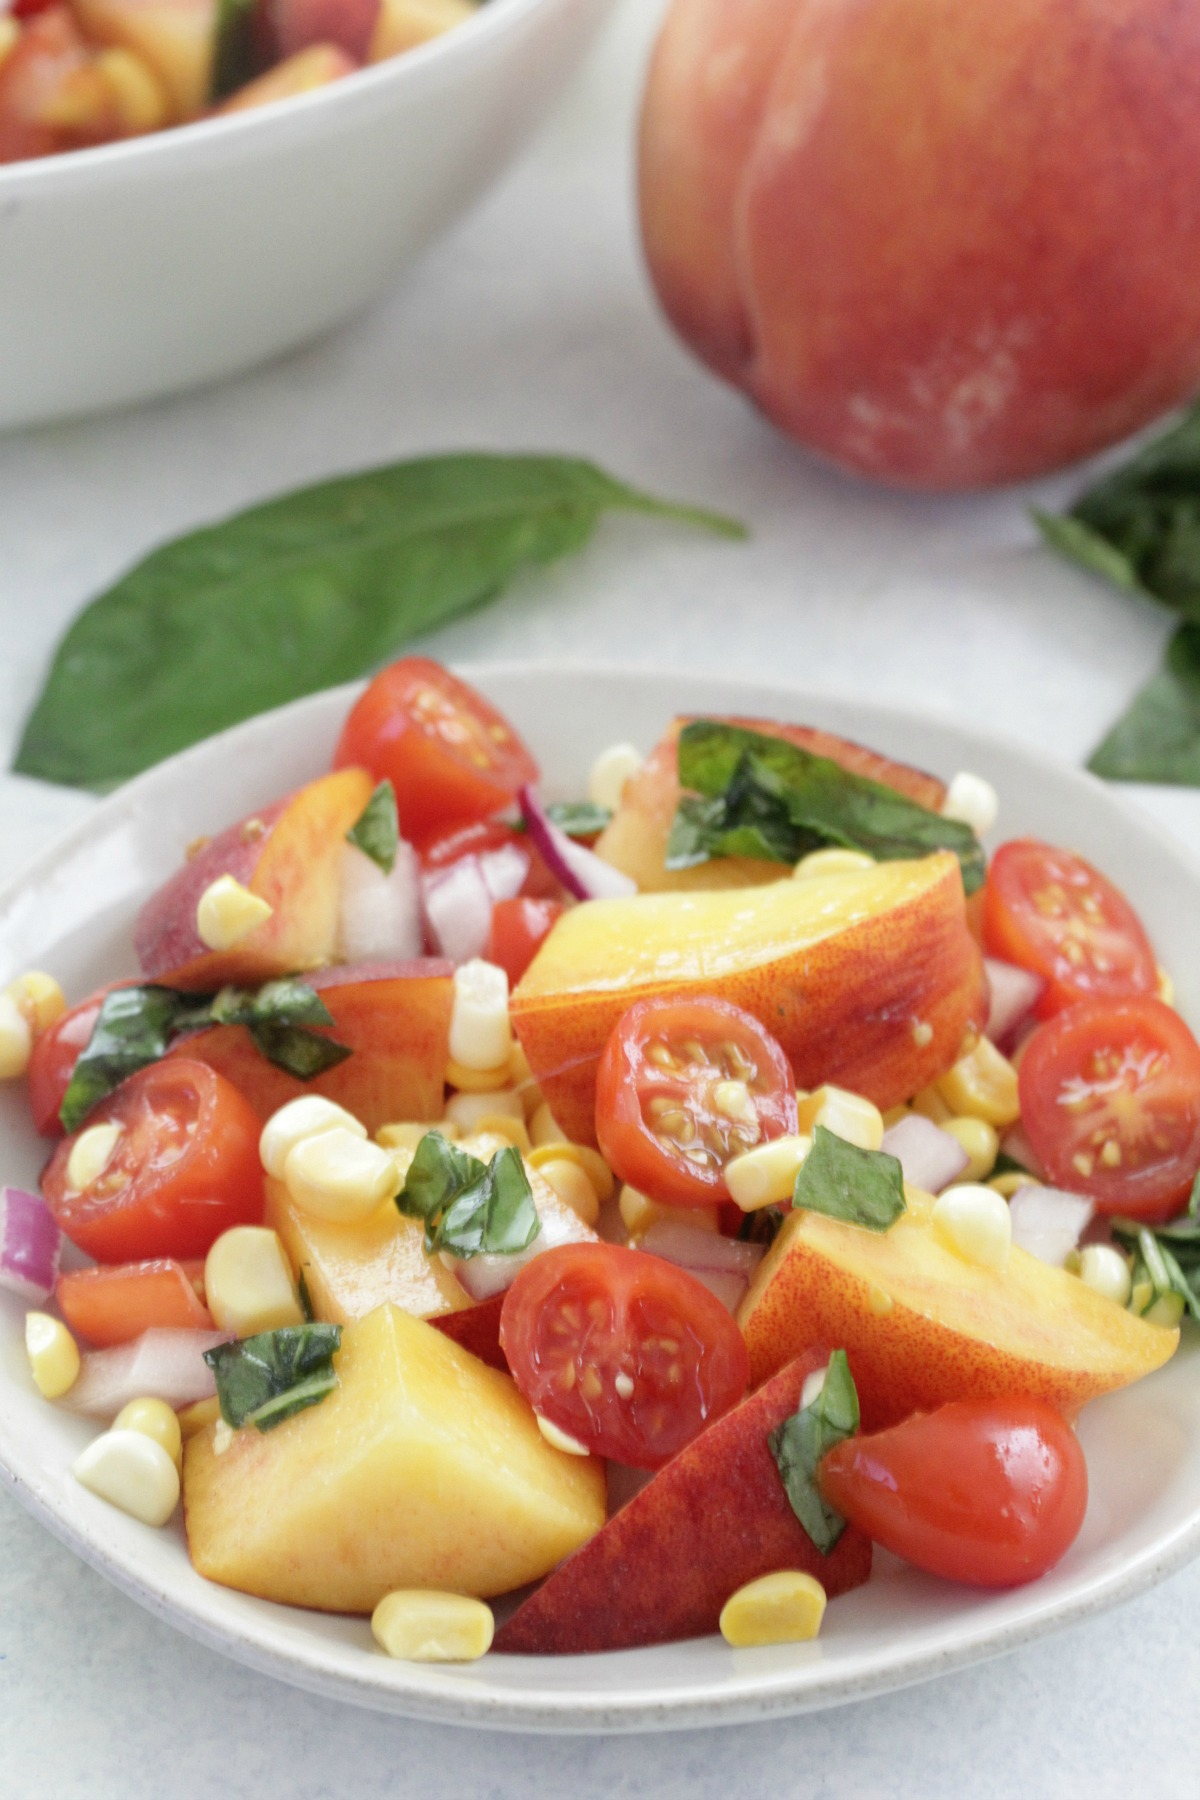 Peach and Tomato Salad on a white plate with a peach